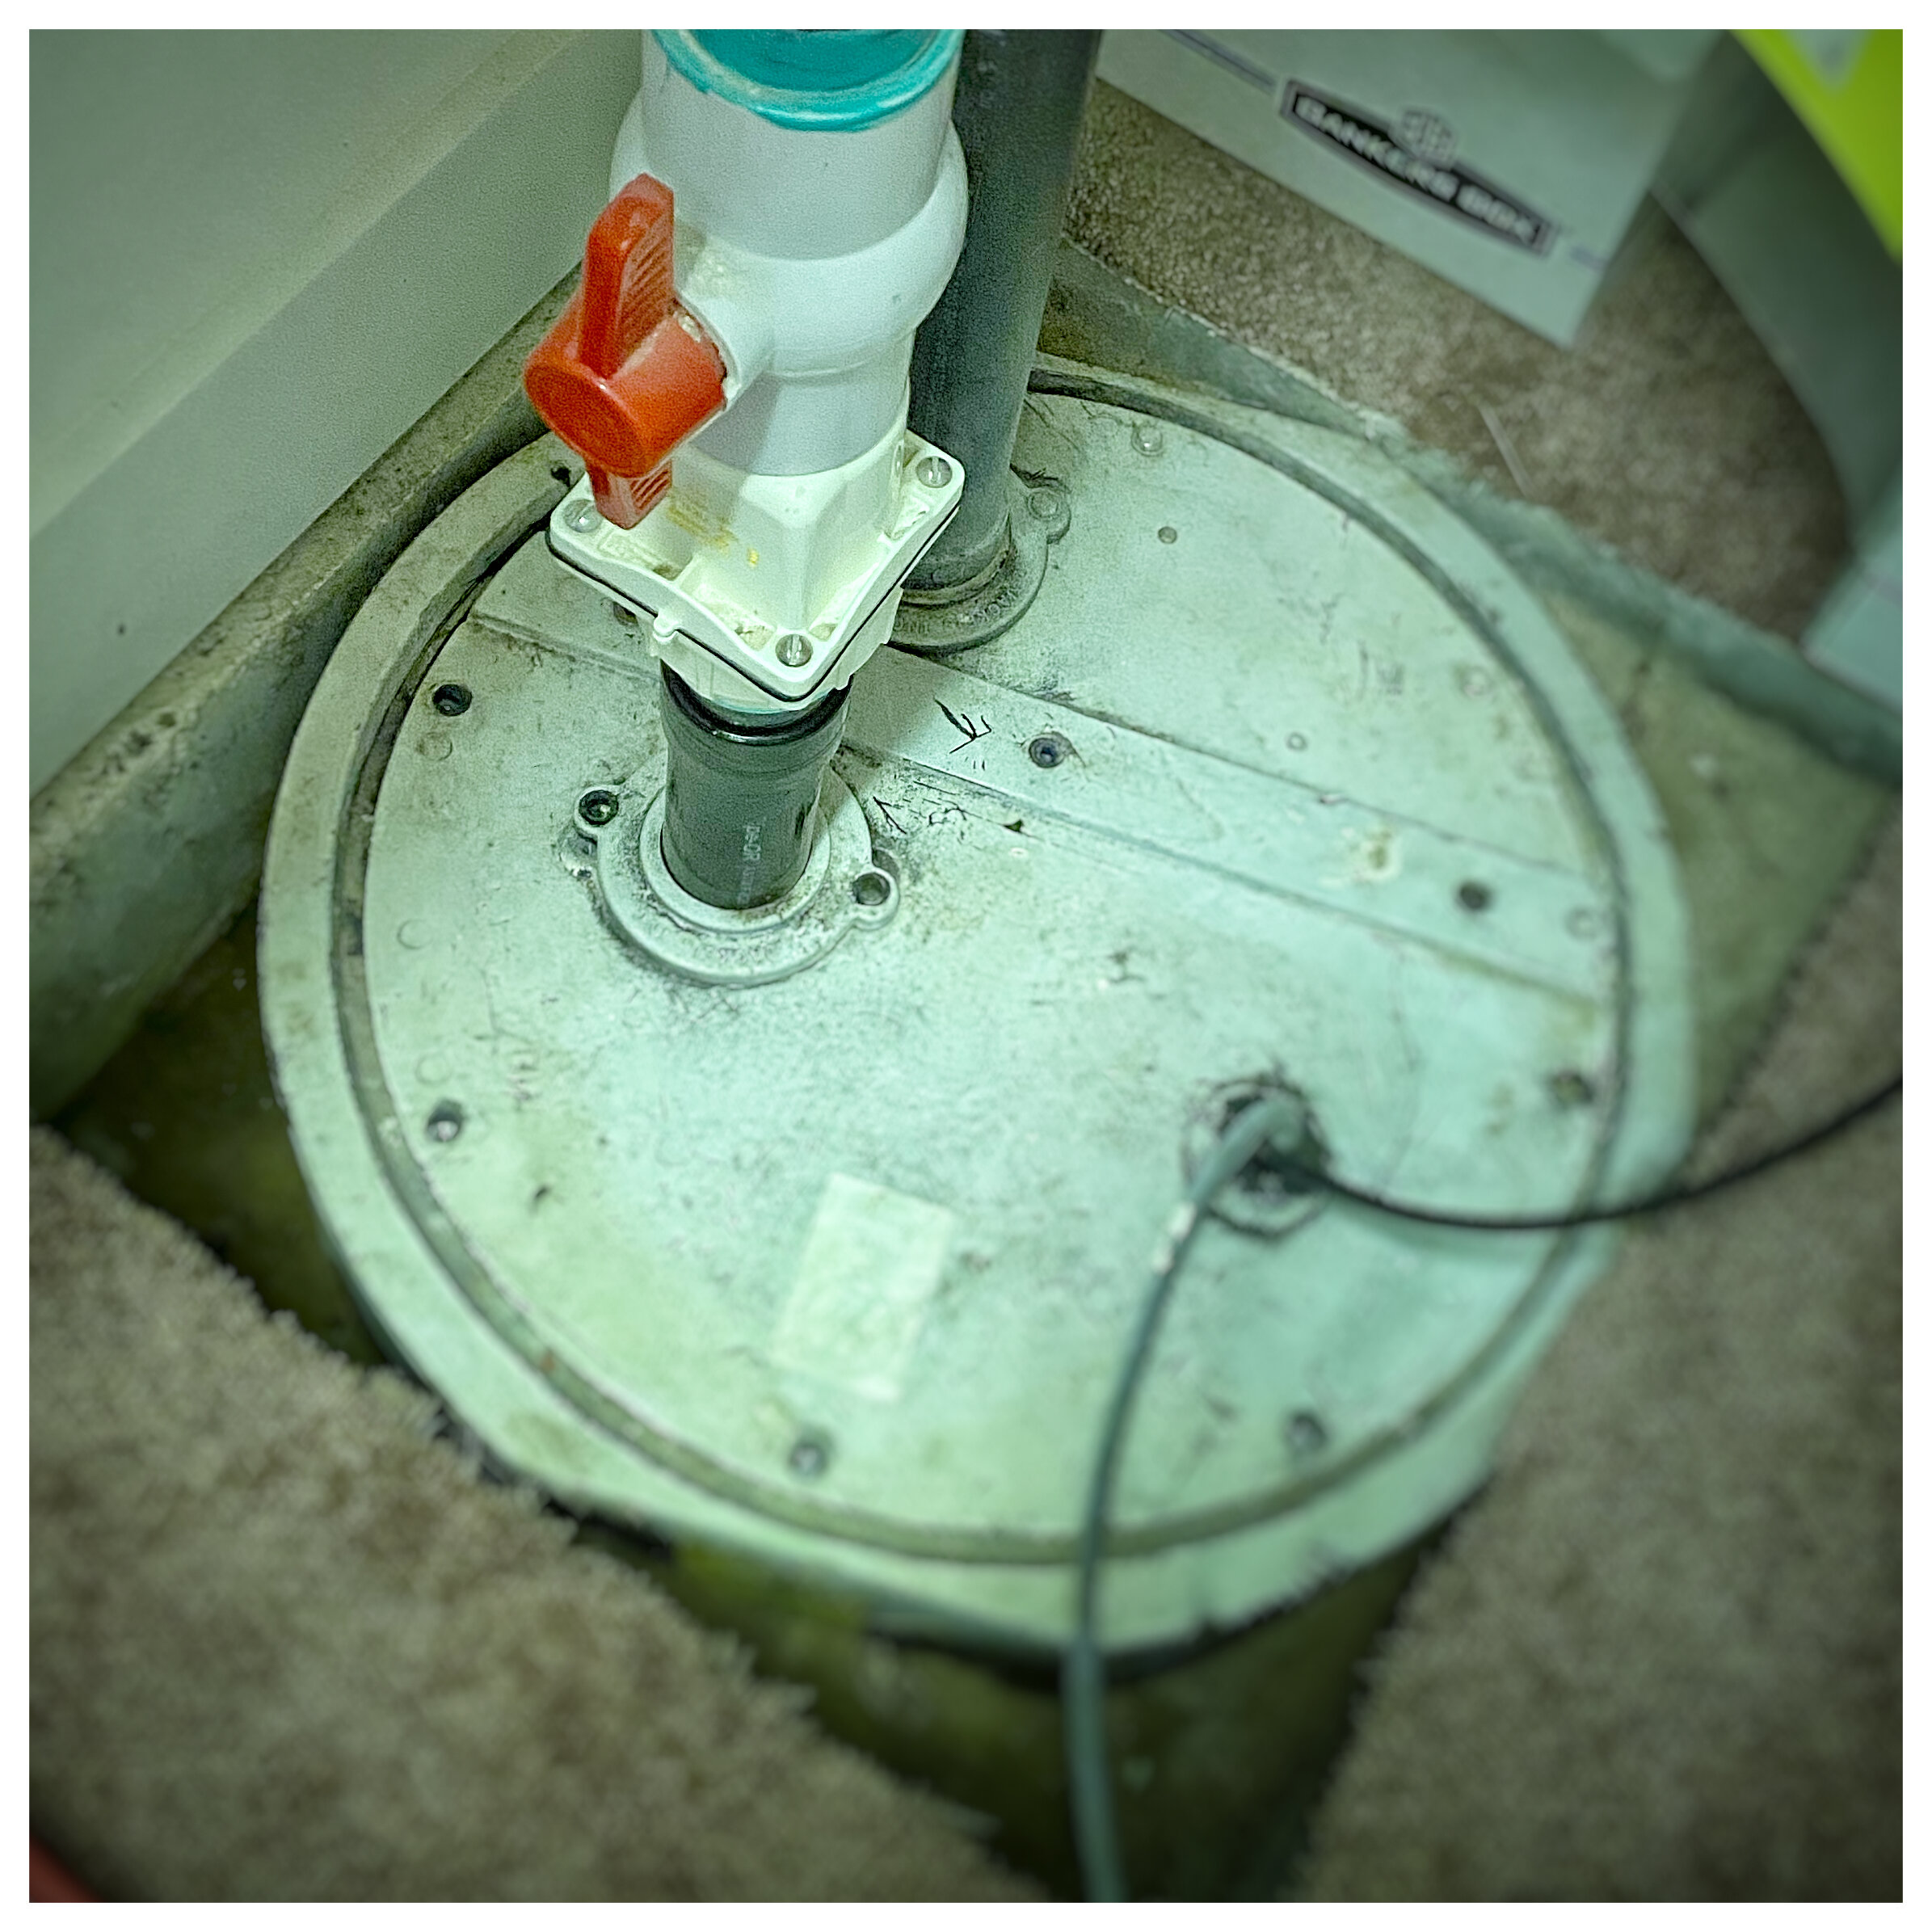 gfci nuisance tripping of sewage pump